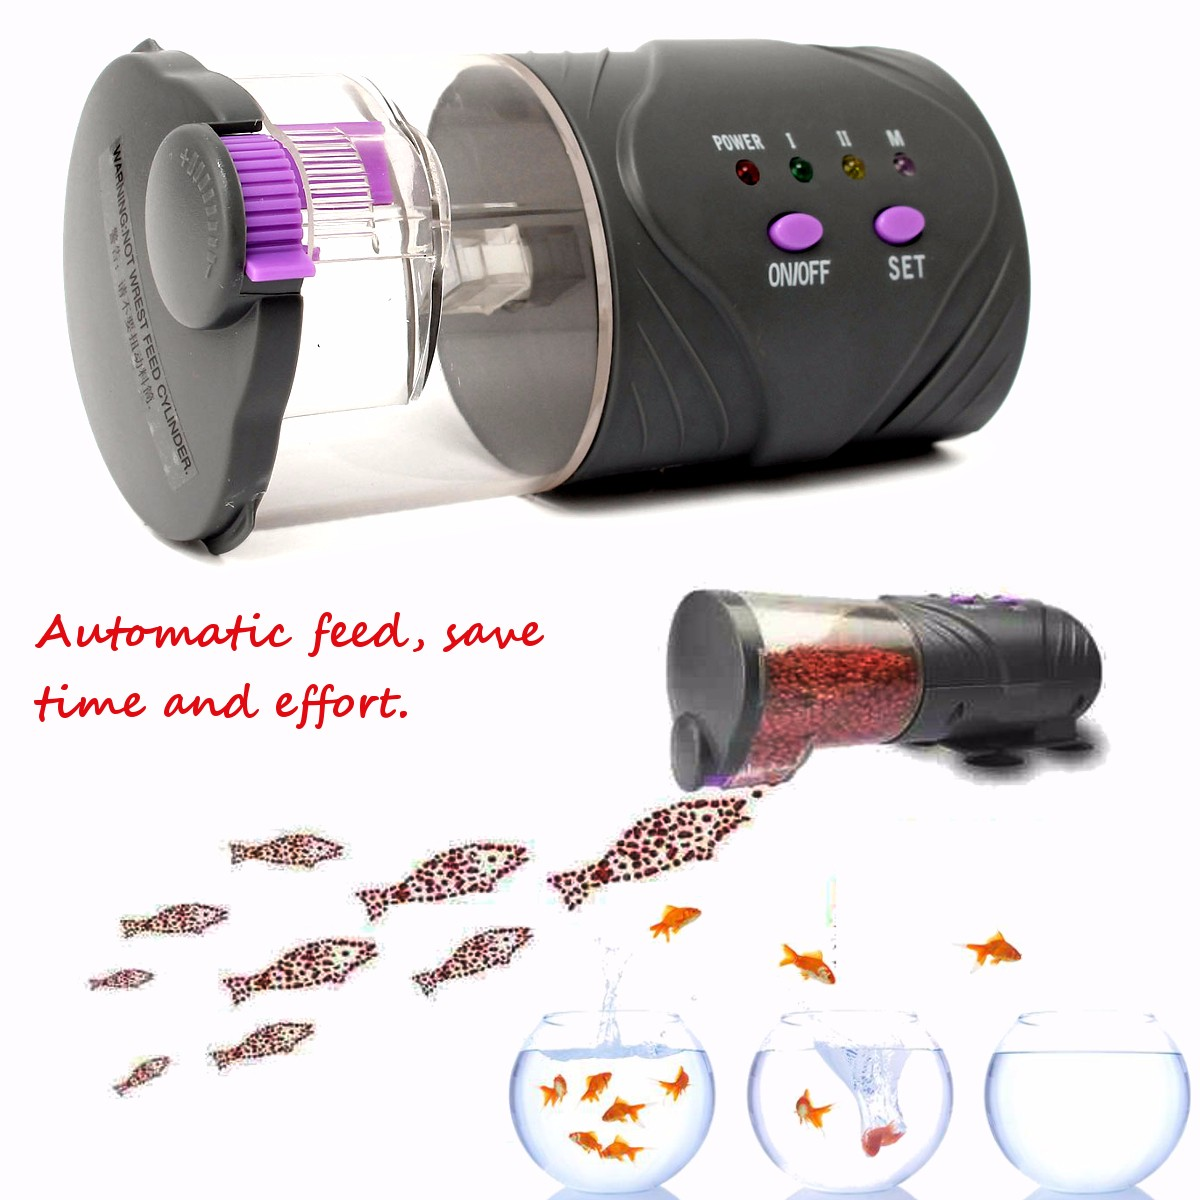 Aquarium Automatic Fish Feeder Aquarium Tank Timer Fish Food Feeder Feeding Tools